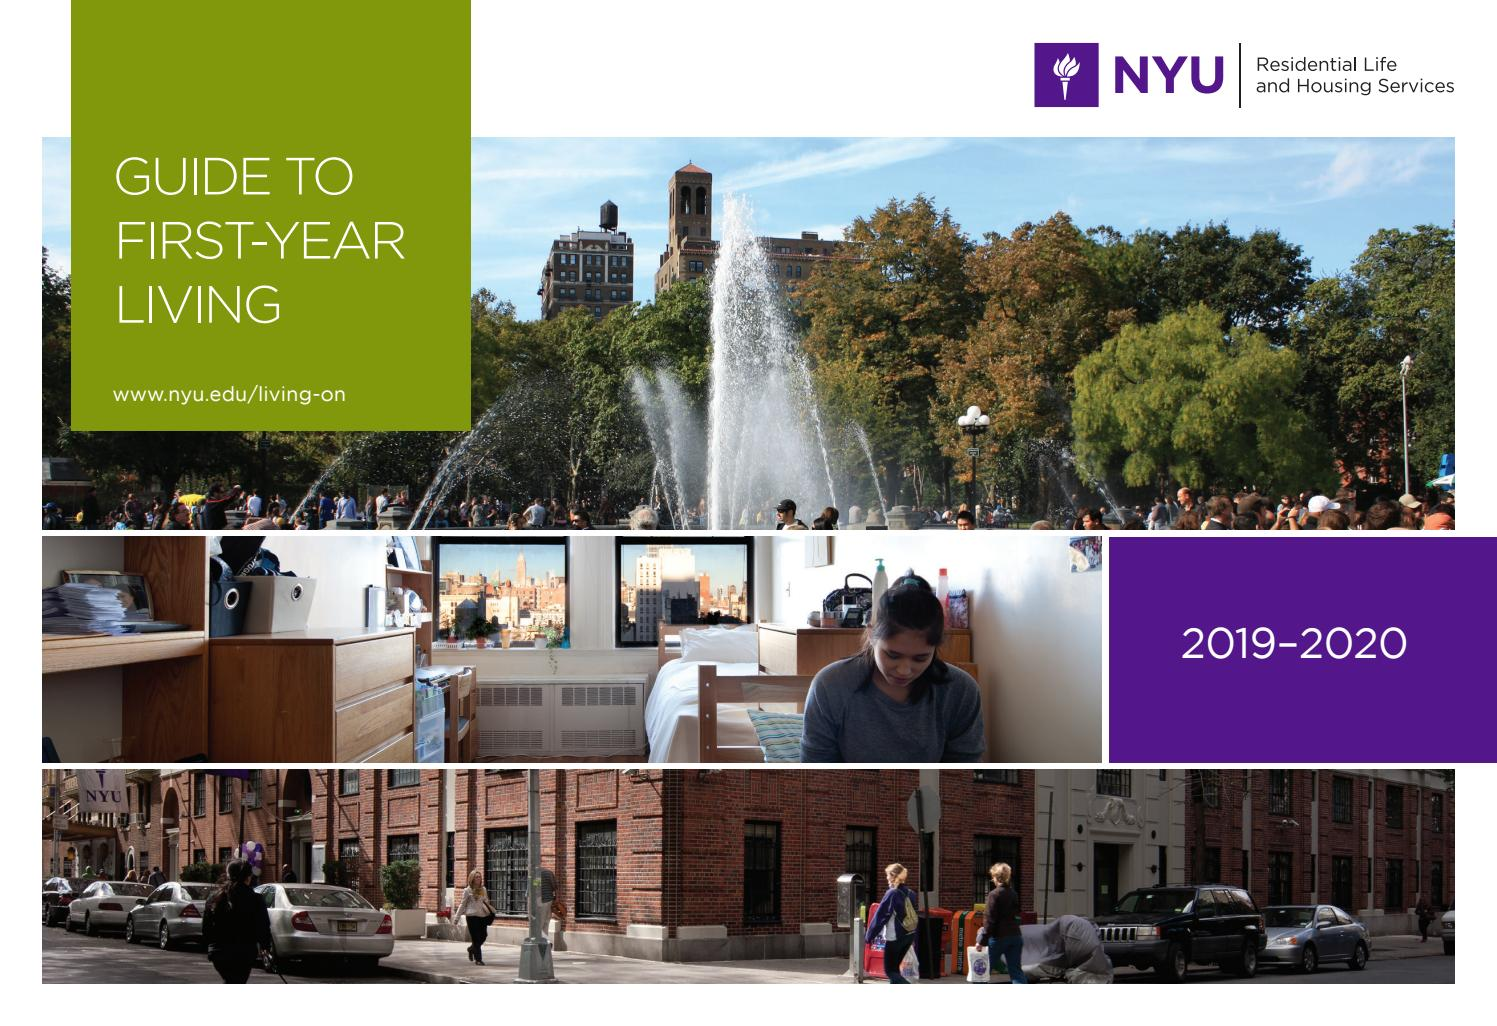 Guide to First-Year Living 2019-2020 by NYU-RLHS - issuu